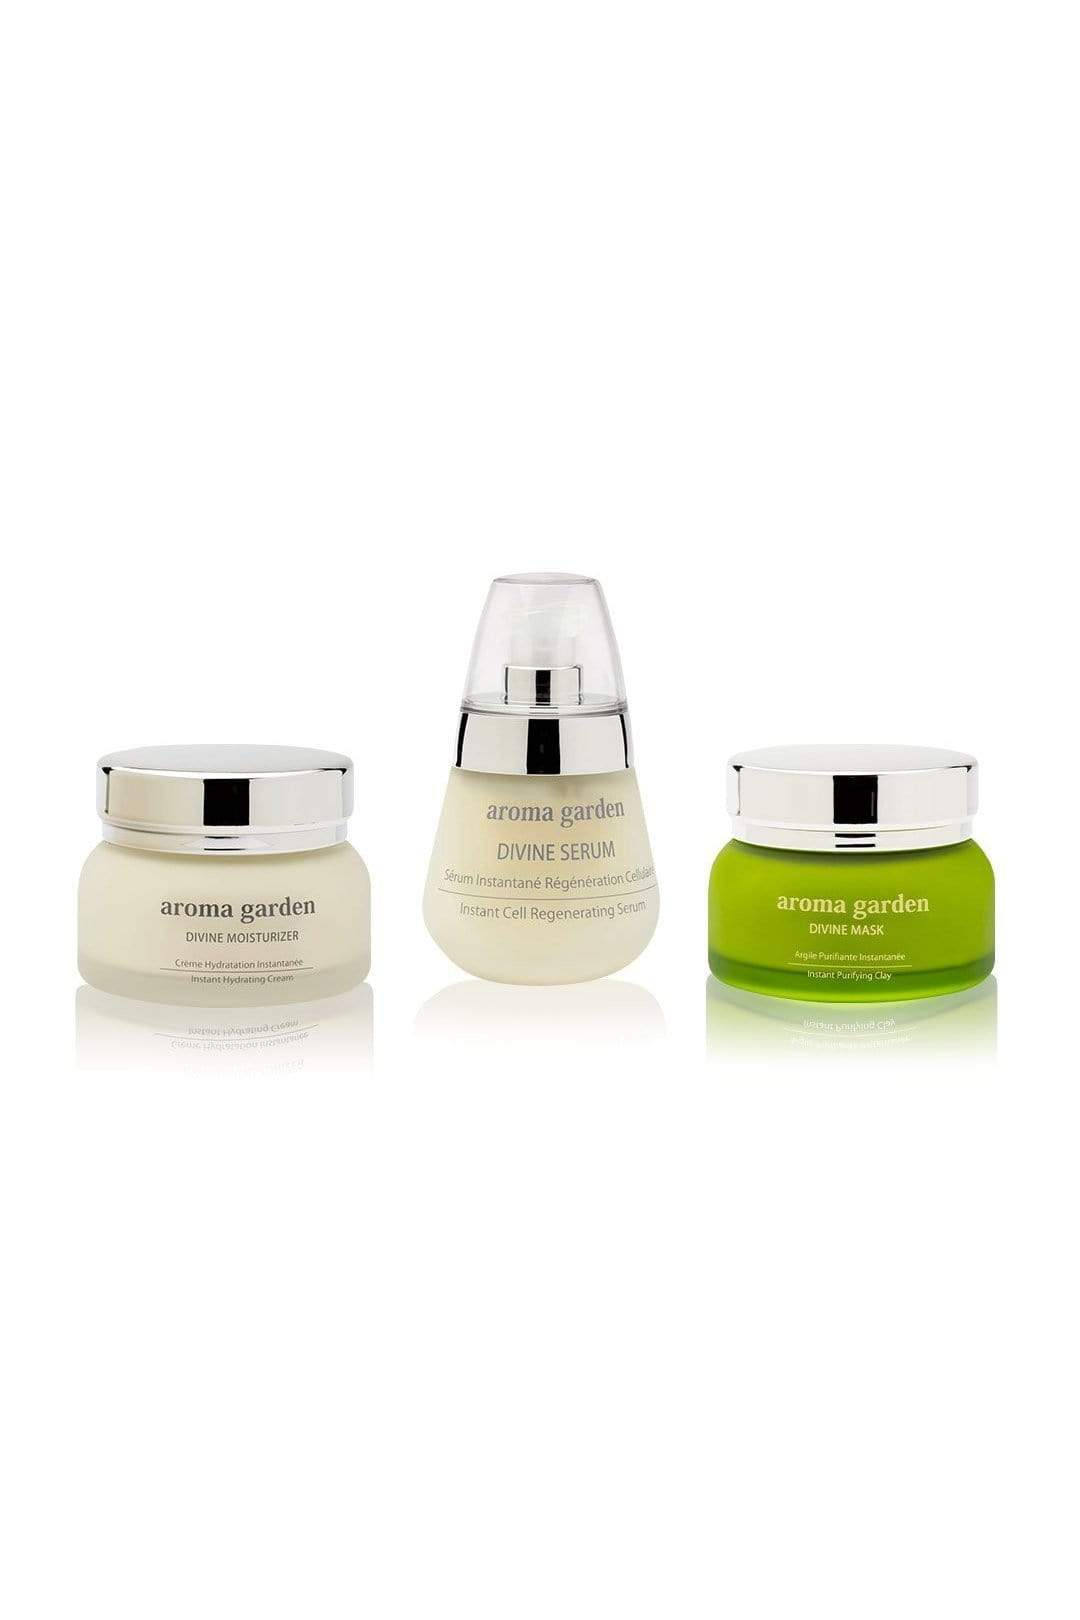 aroma garden cream Organic 3 in 1 Divine Gift Set (Moisturizer /Serum /Mask). sustainable fashion ethical fashion